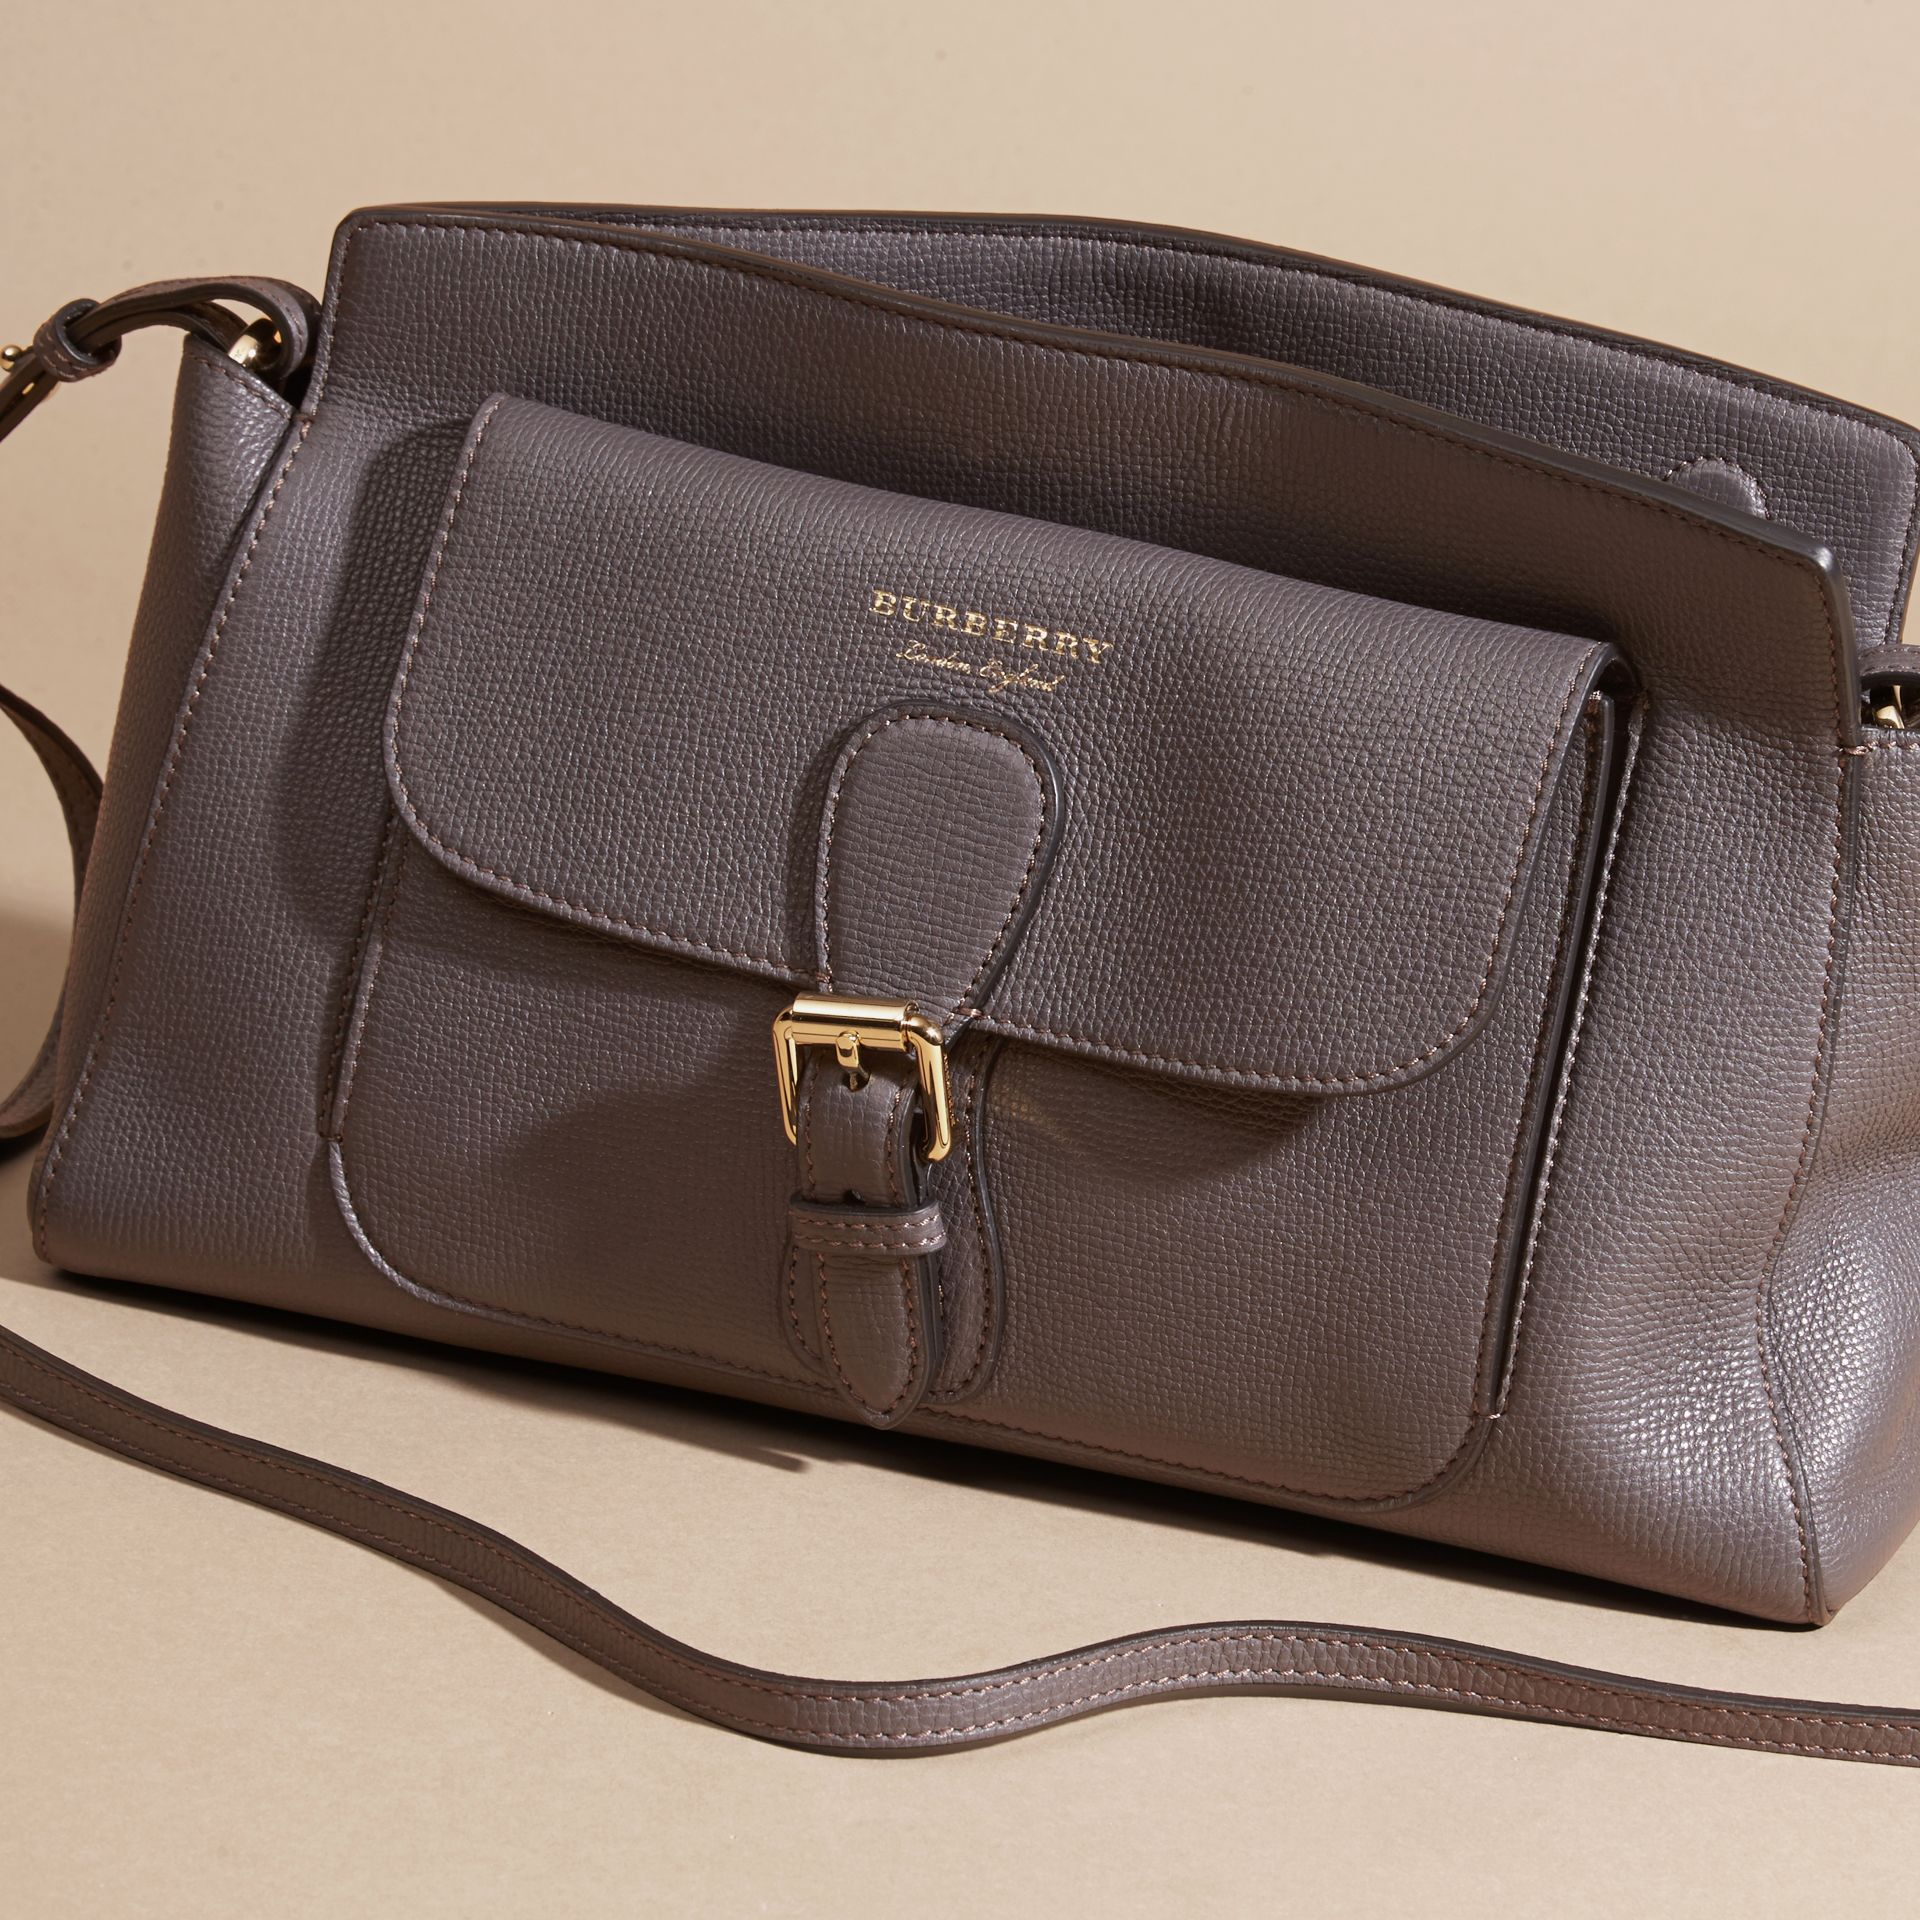 Sepia grey The Saddle Clutch in Grainy Bonded Leather Sepia Grey - gallery image 7